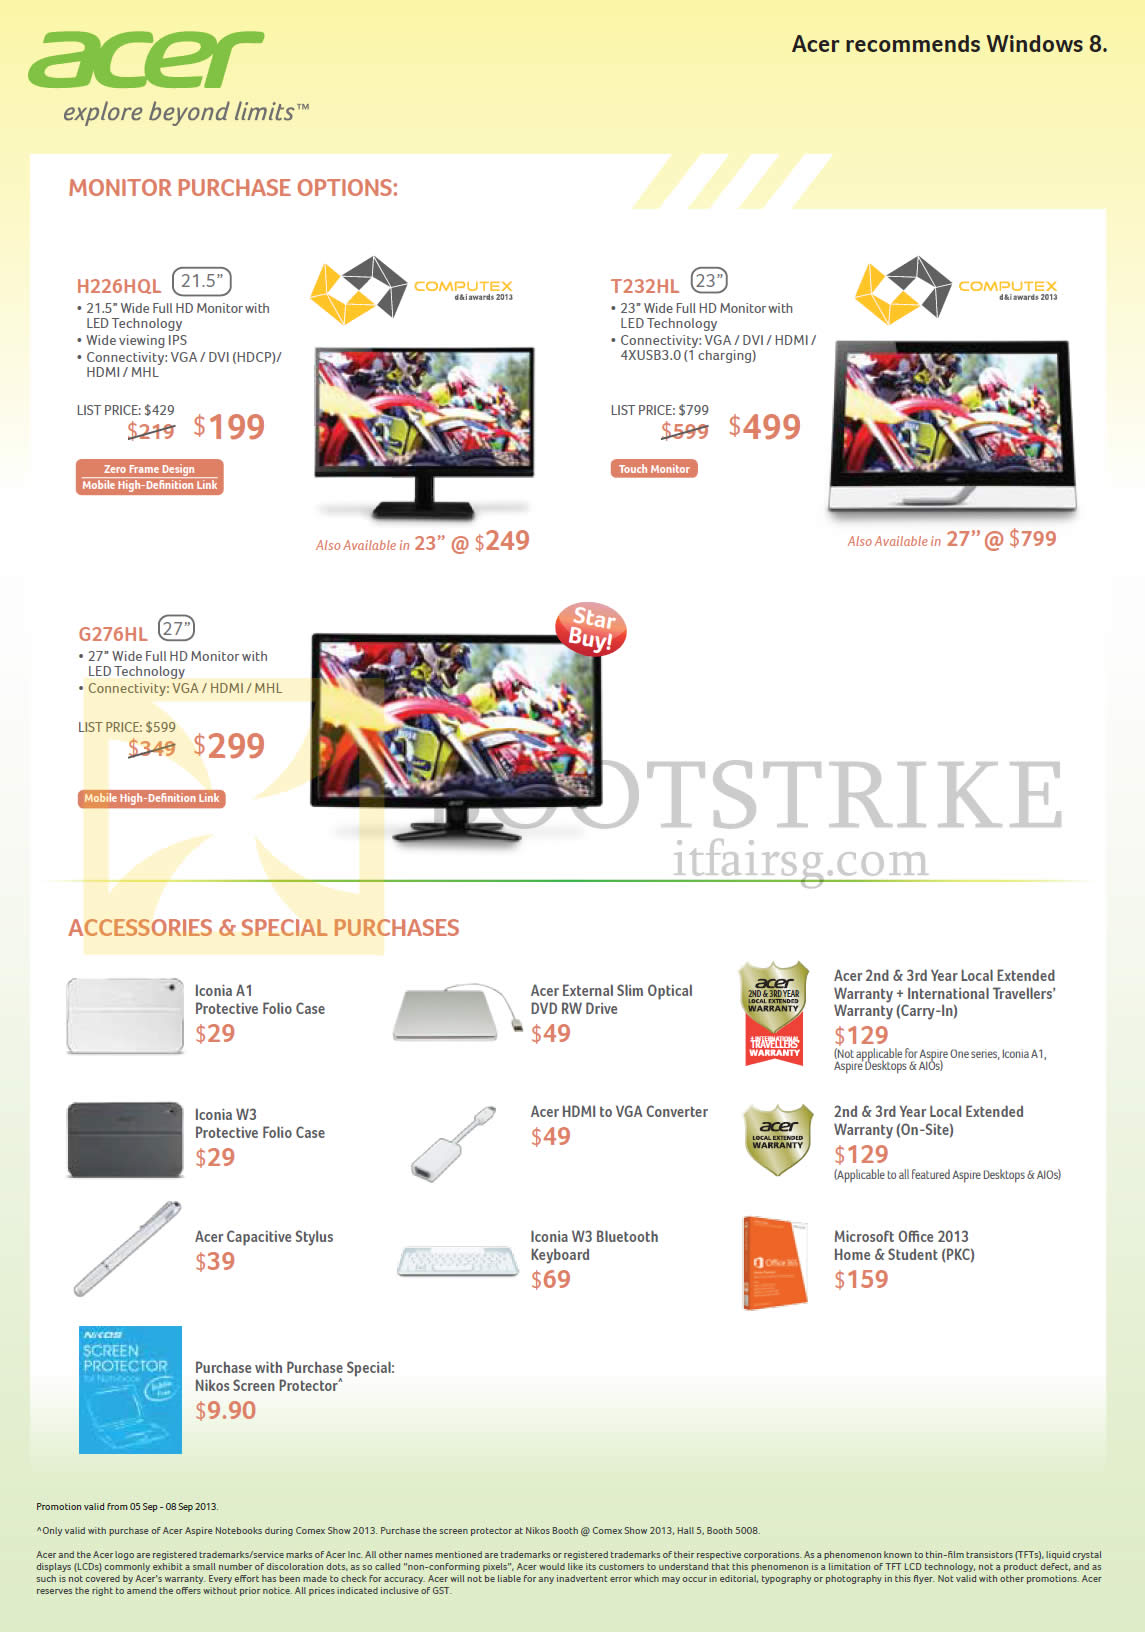 COMEX 2013 price list image brochure of Acer Monitors LED H226HQL, T232HL, G276HL, Accessories Case, Warranty, Microsoft Office 2013, External Optical Drive